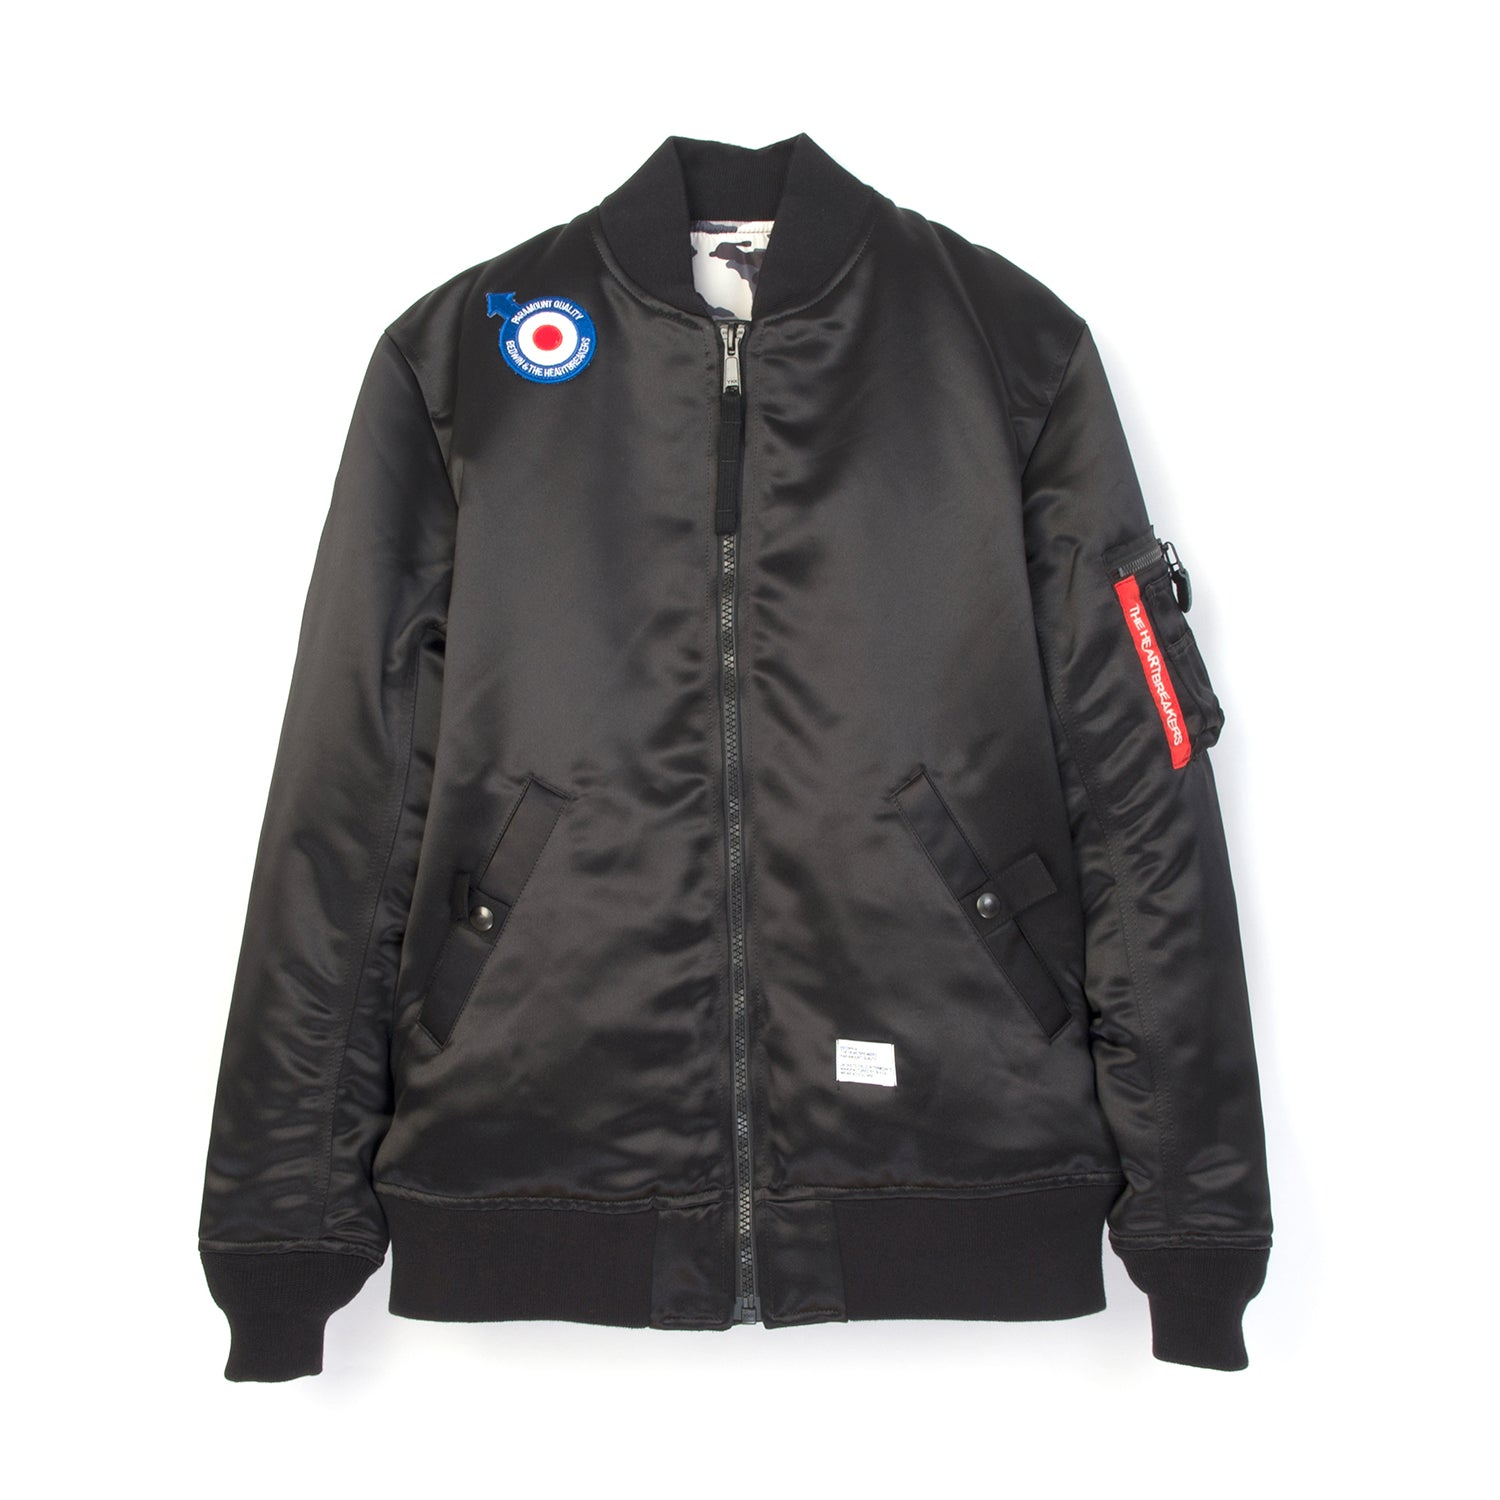 Bedwin 'Duffy' MA-1 Jacket Black